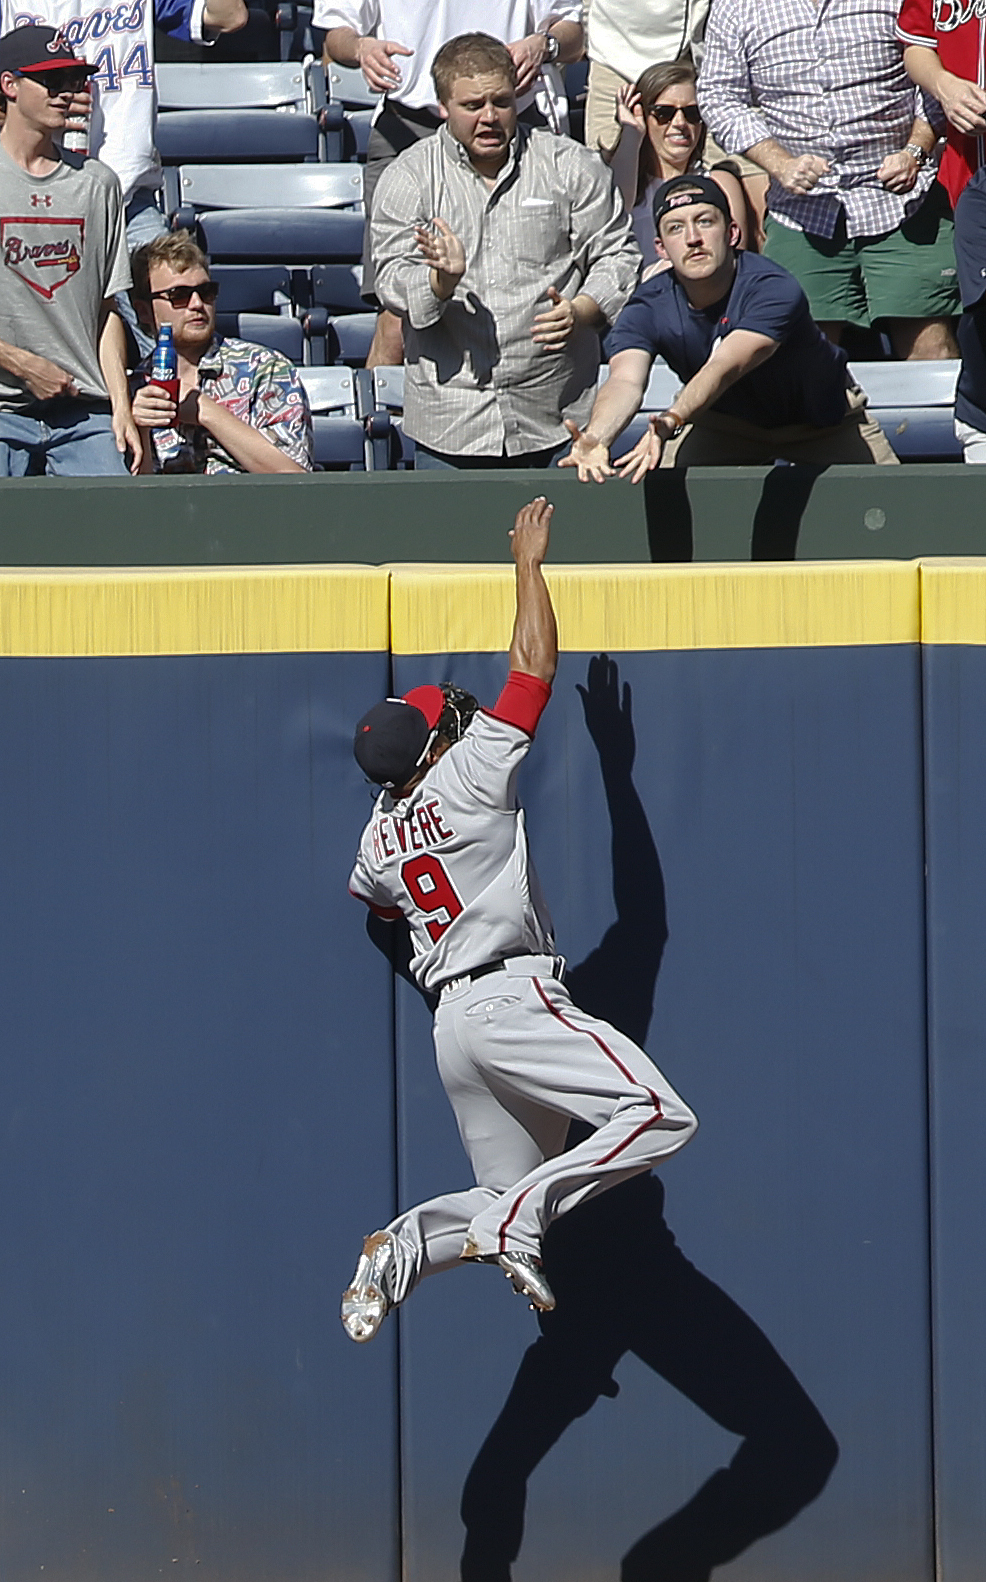 Washington Nationals center fielder Ben Revere (9) fails to reach a ball hit for a home run by Atlanta Braves' Freddie Freeman (5) in the firs tinning of a baseball game Monday, April 4, 2016, in Atlanta. (AP Photo/John Bazemore)